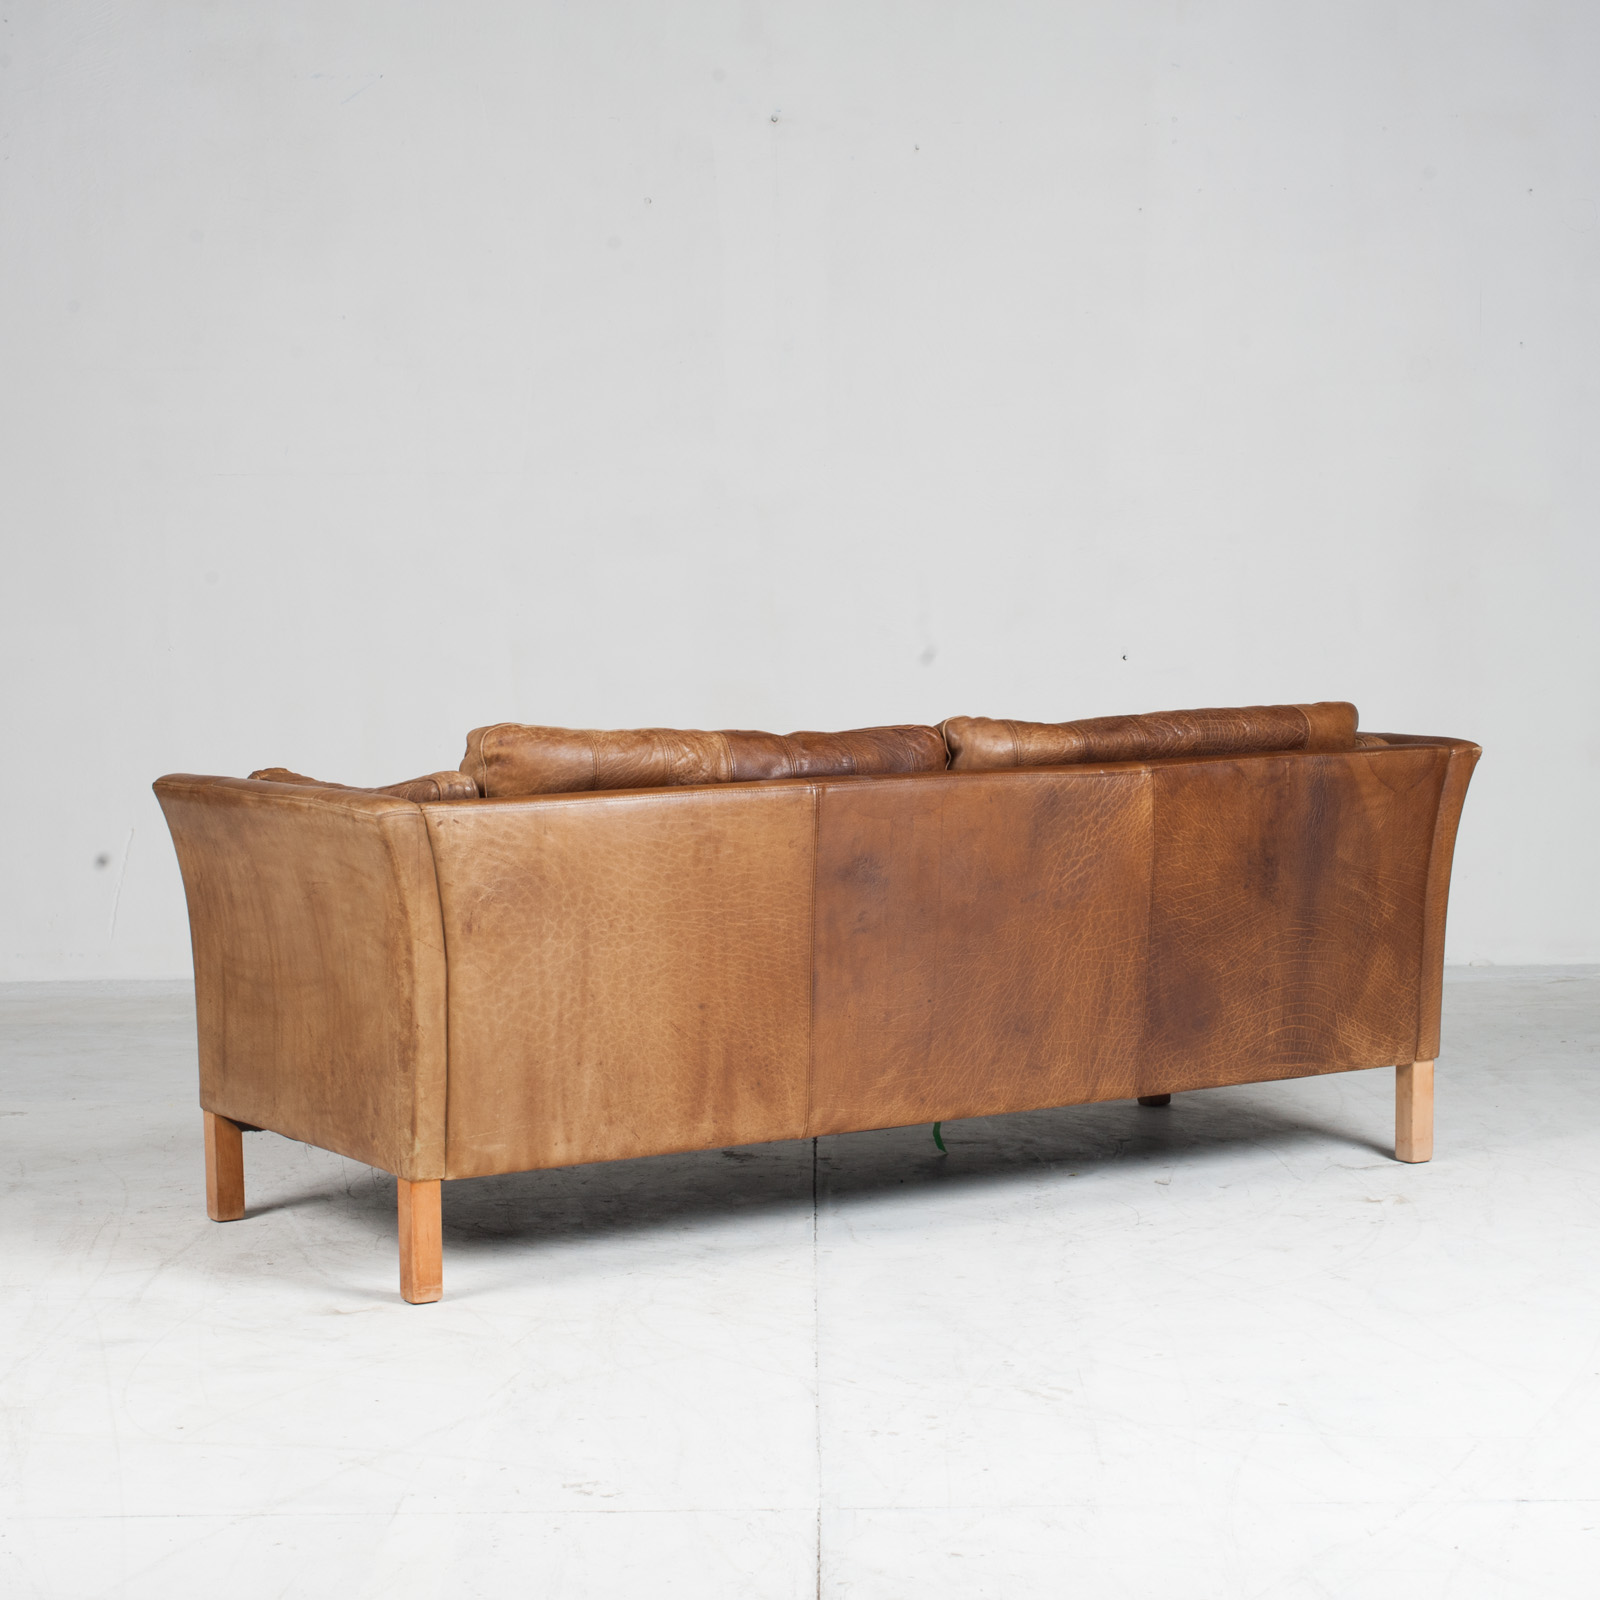 2.5 Seat Sofa In Tan Panelled Leather 1960s Denmark14